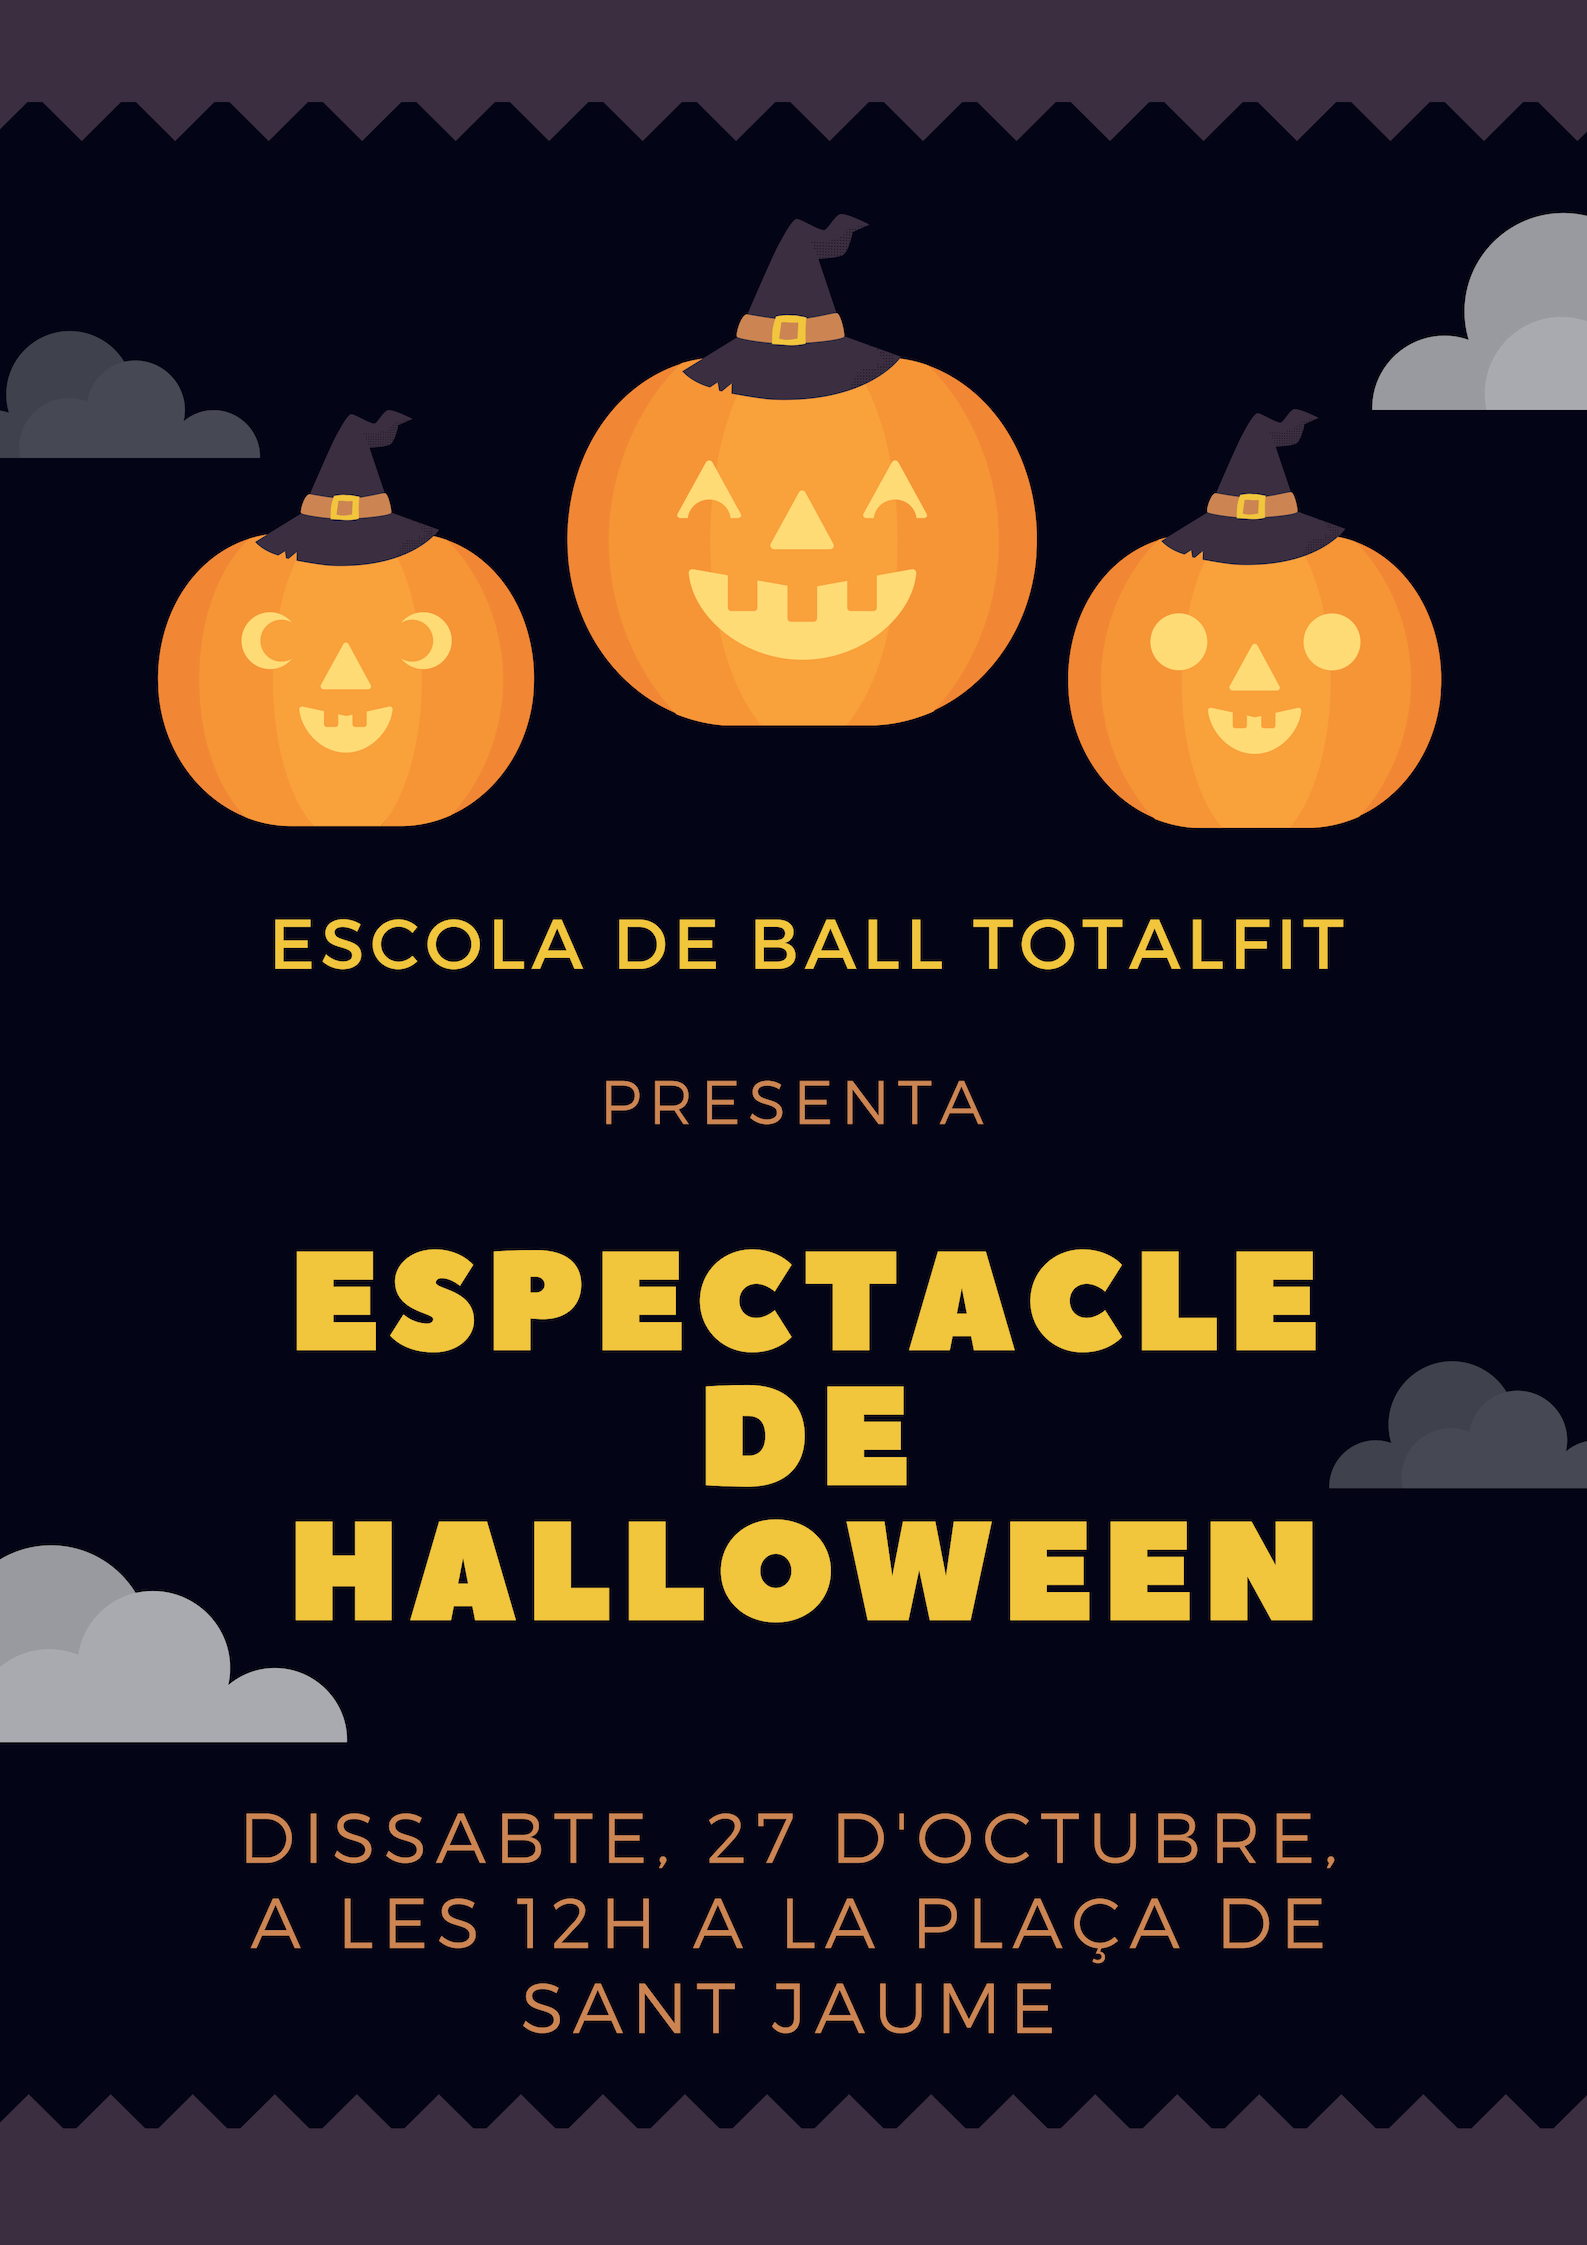 ESPECTACLE DE HALLOWEEN